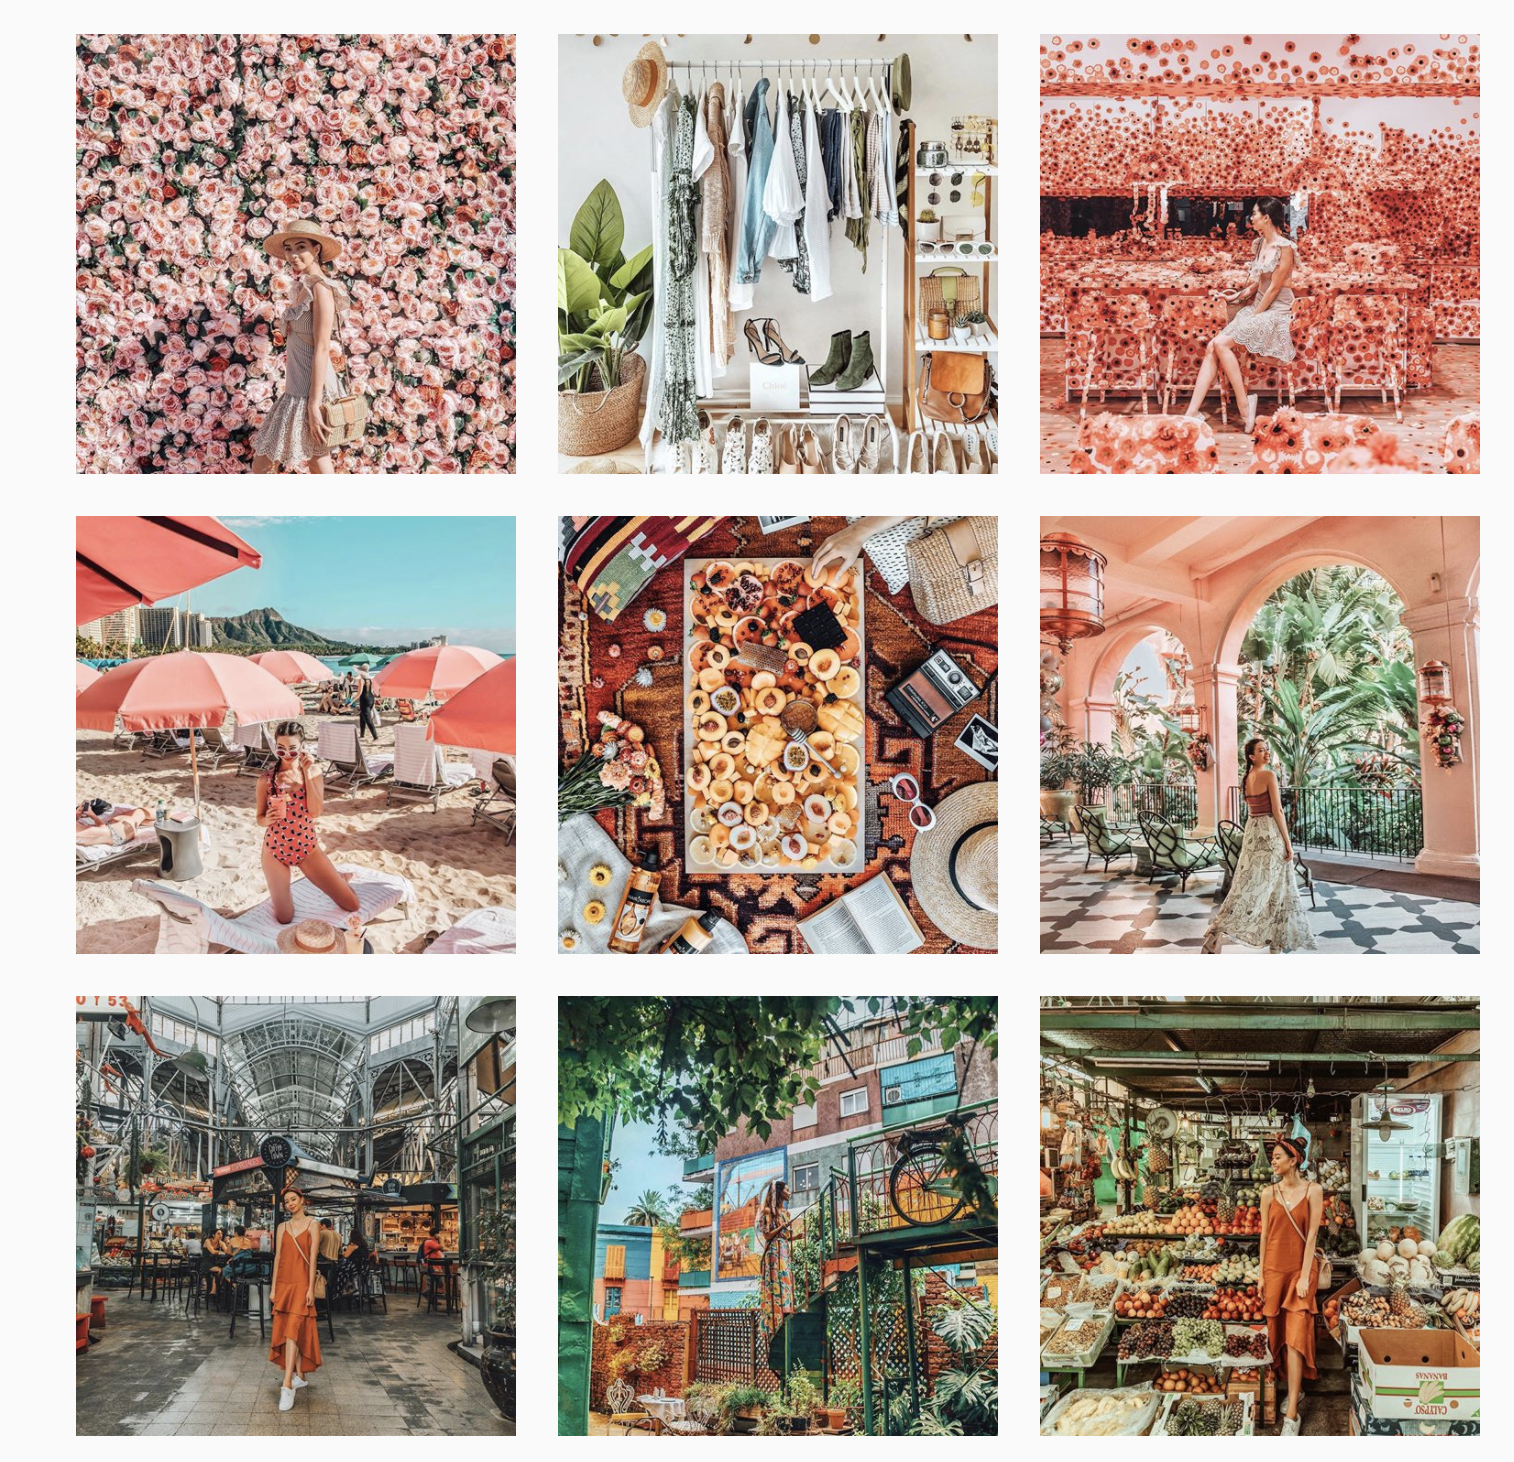 9 Brilliant Instagram Feed Ideas That Can Make Your Profile Standout - Business 2 Community